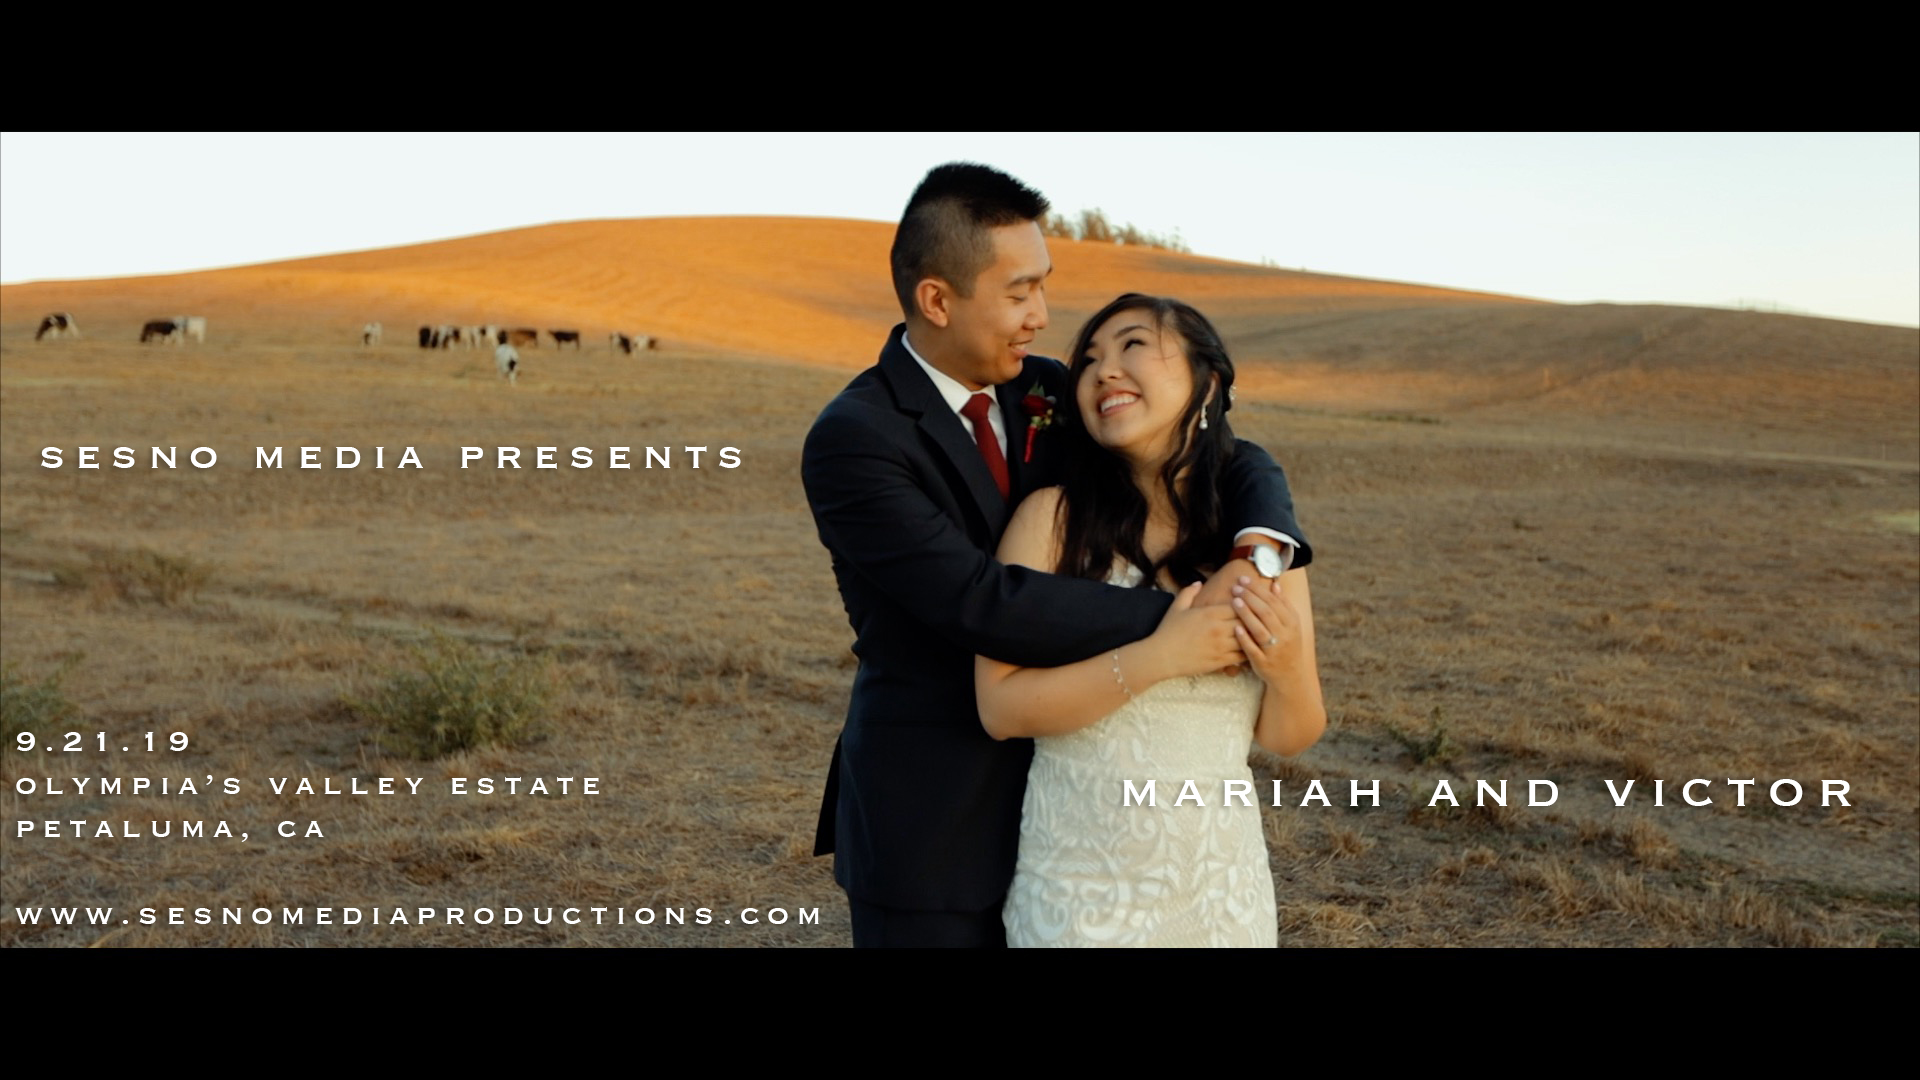 Mariah + Victor | Petaluma, California | Olympia's Valley Estate